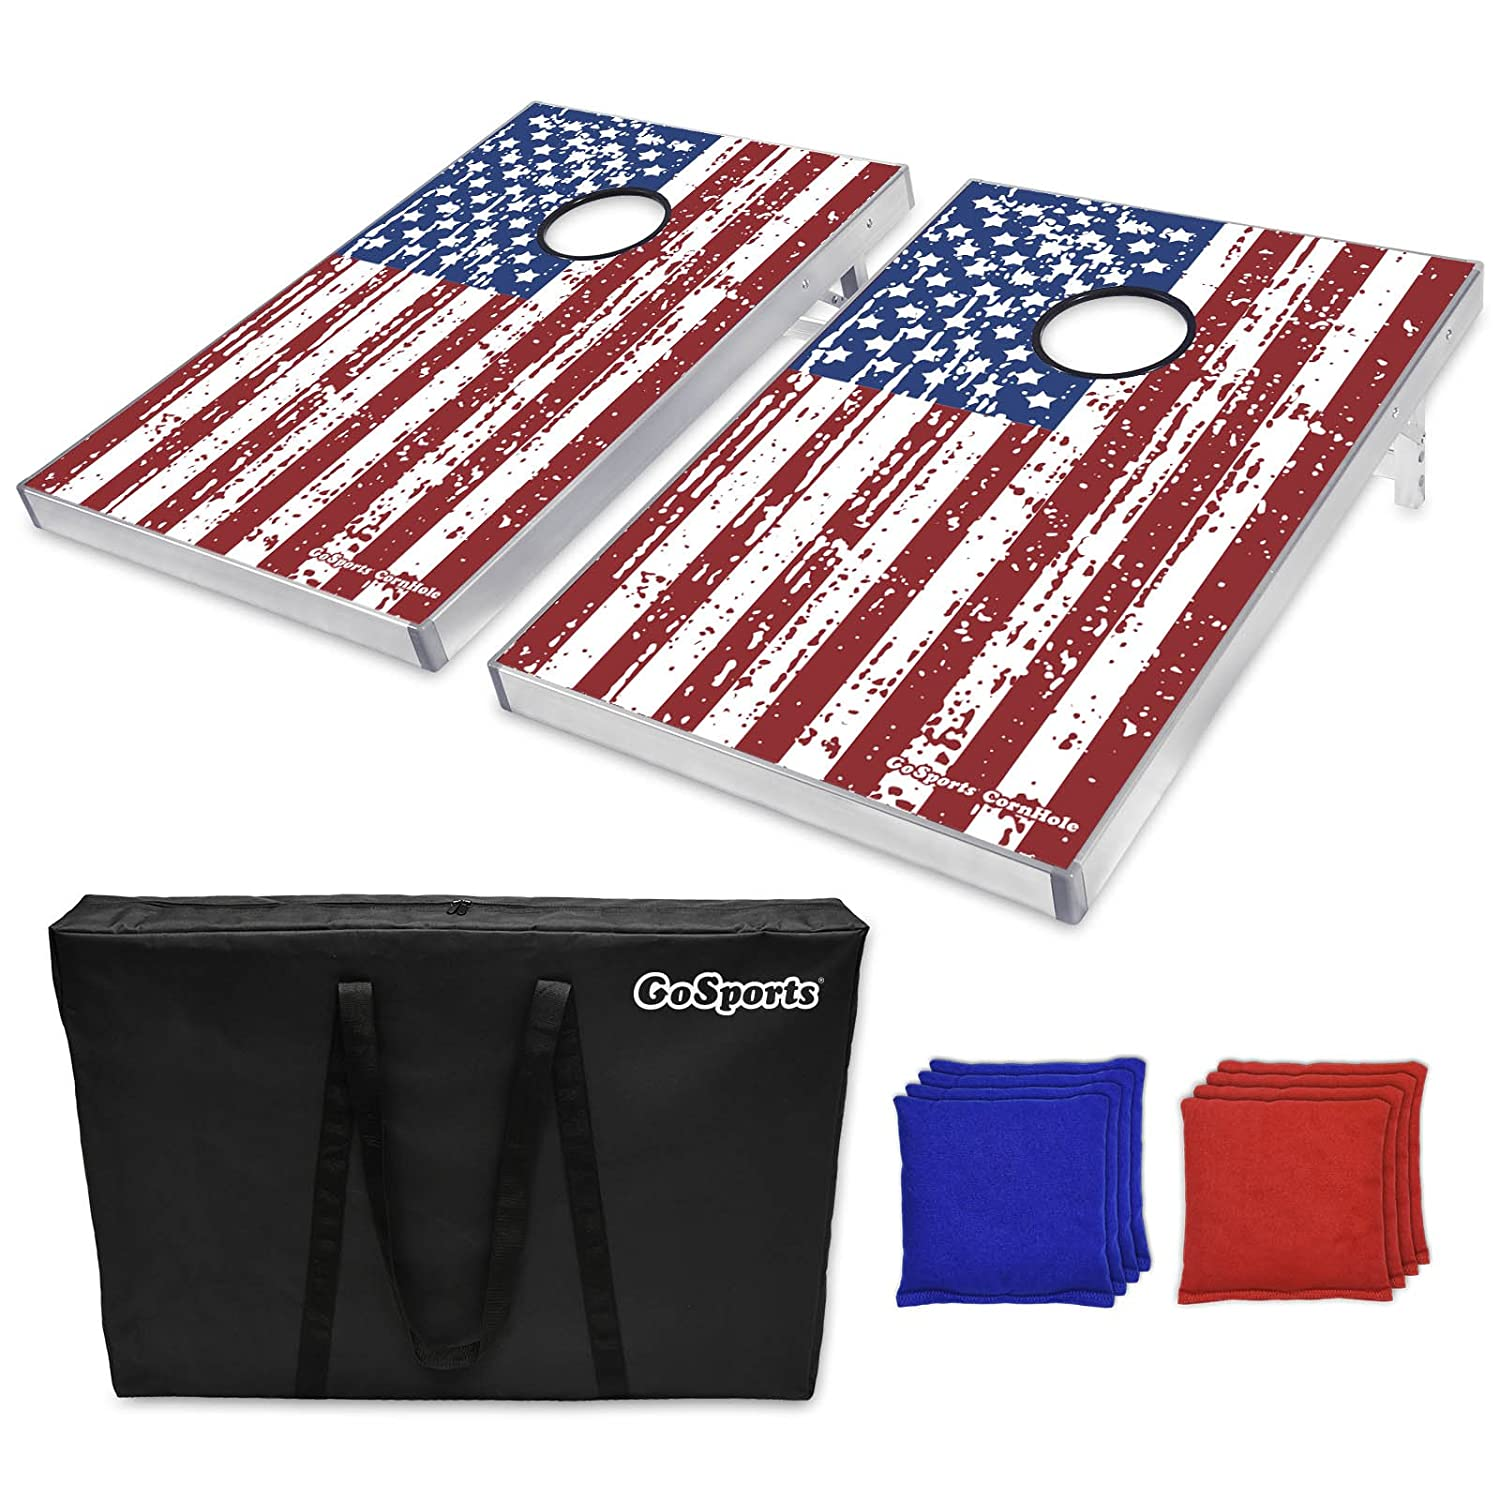 GoSports Cornhole Bean Bag Toss Game Set (LED)